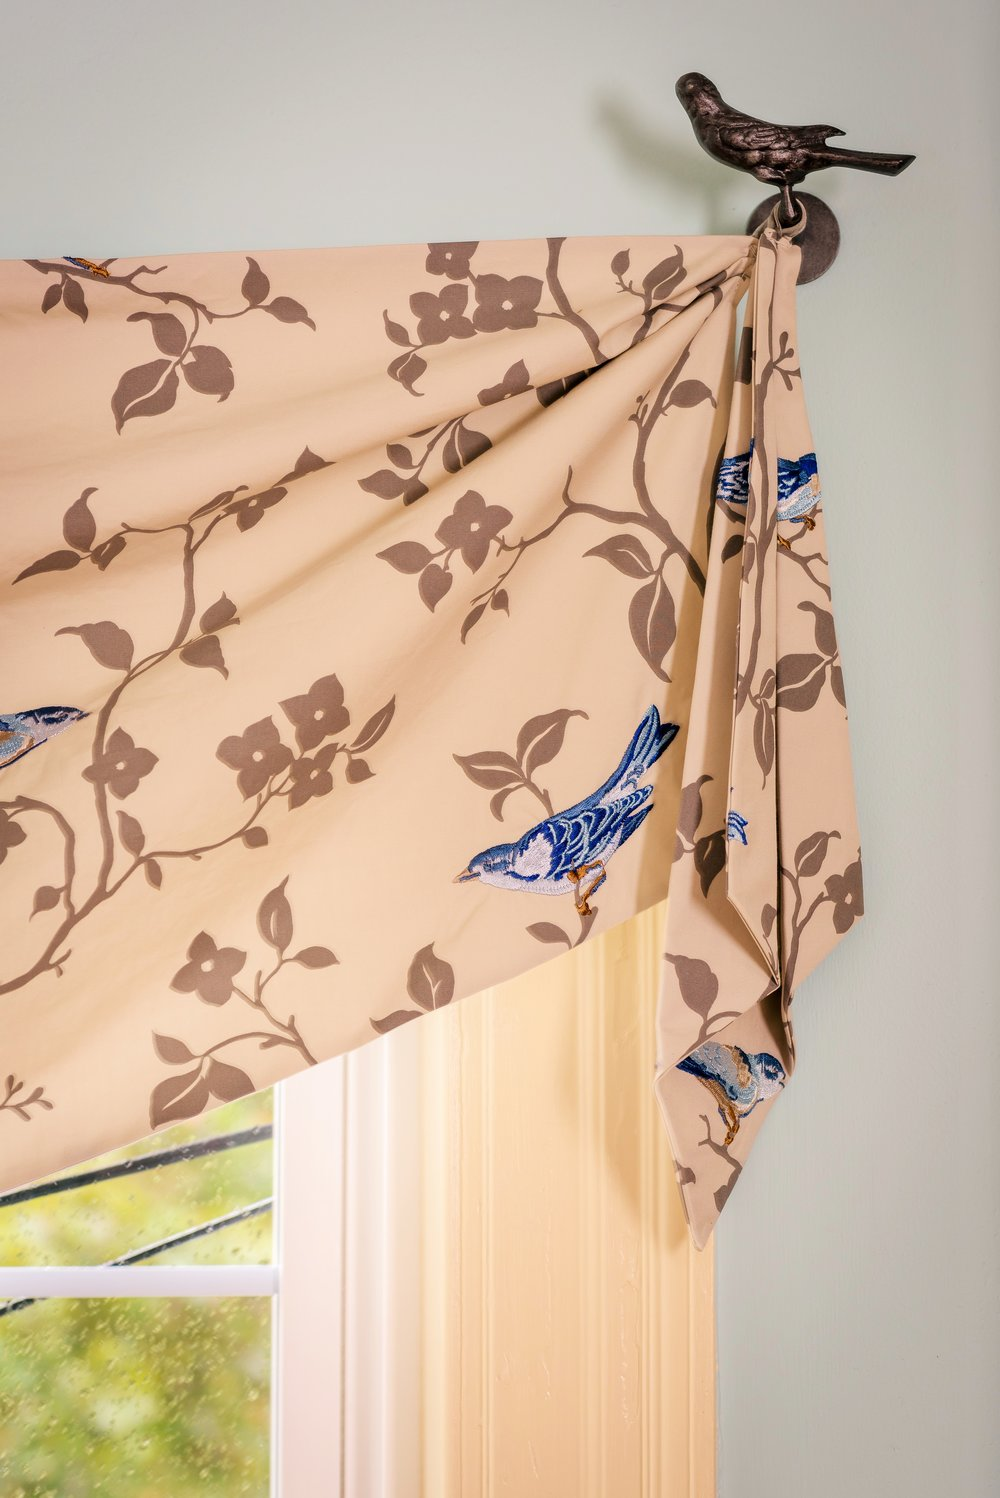 drapery-roman-shades-blinds-home-decor-swags-valances-londonderry-salem-17.jpg